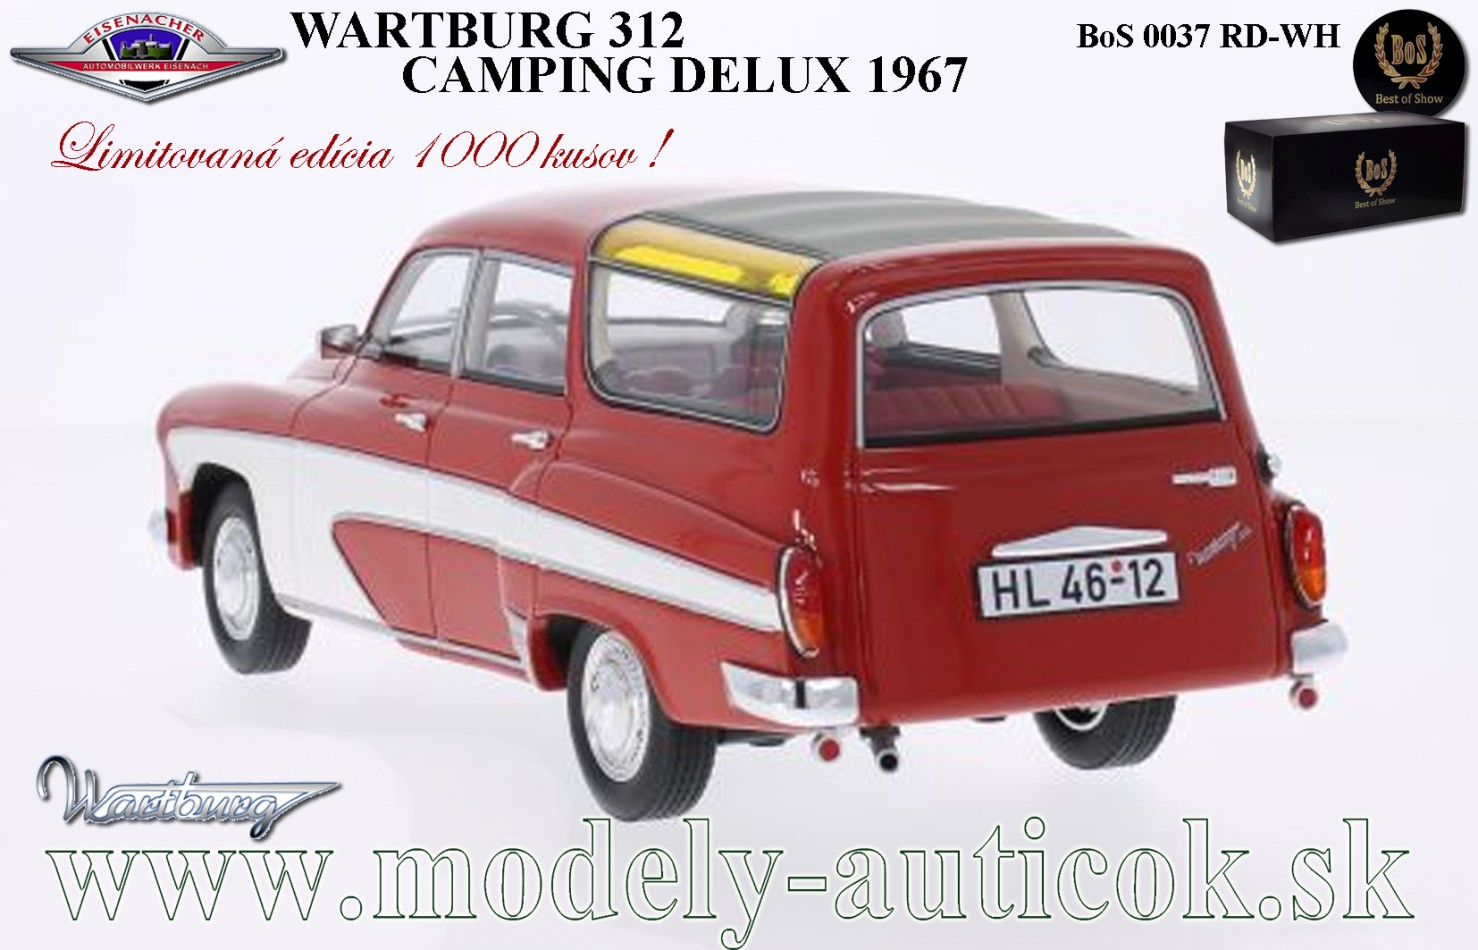 wartburg 312 camping delux 1967 automodely cmc bbr. Black Bedroom Furniture Sets. Home Design Ideas